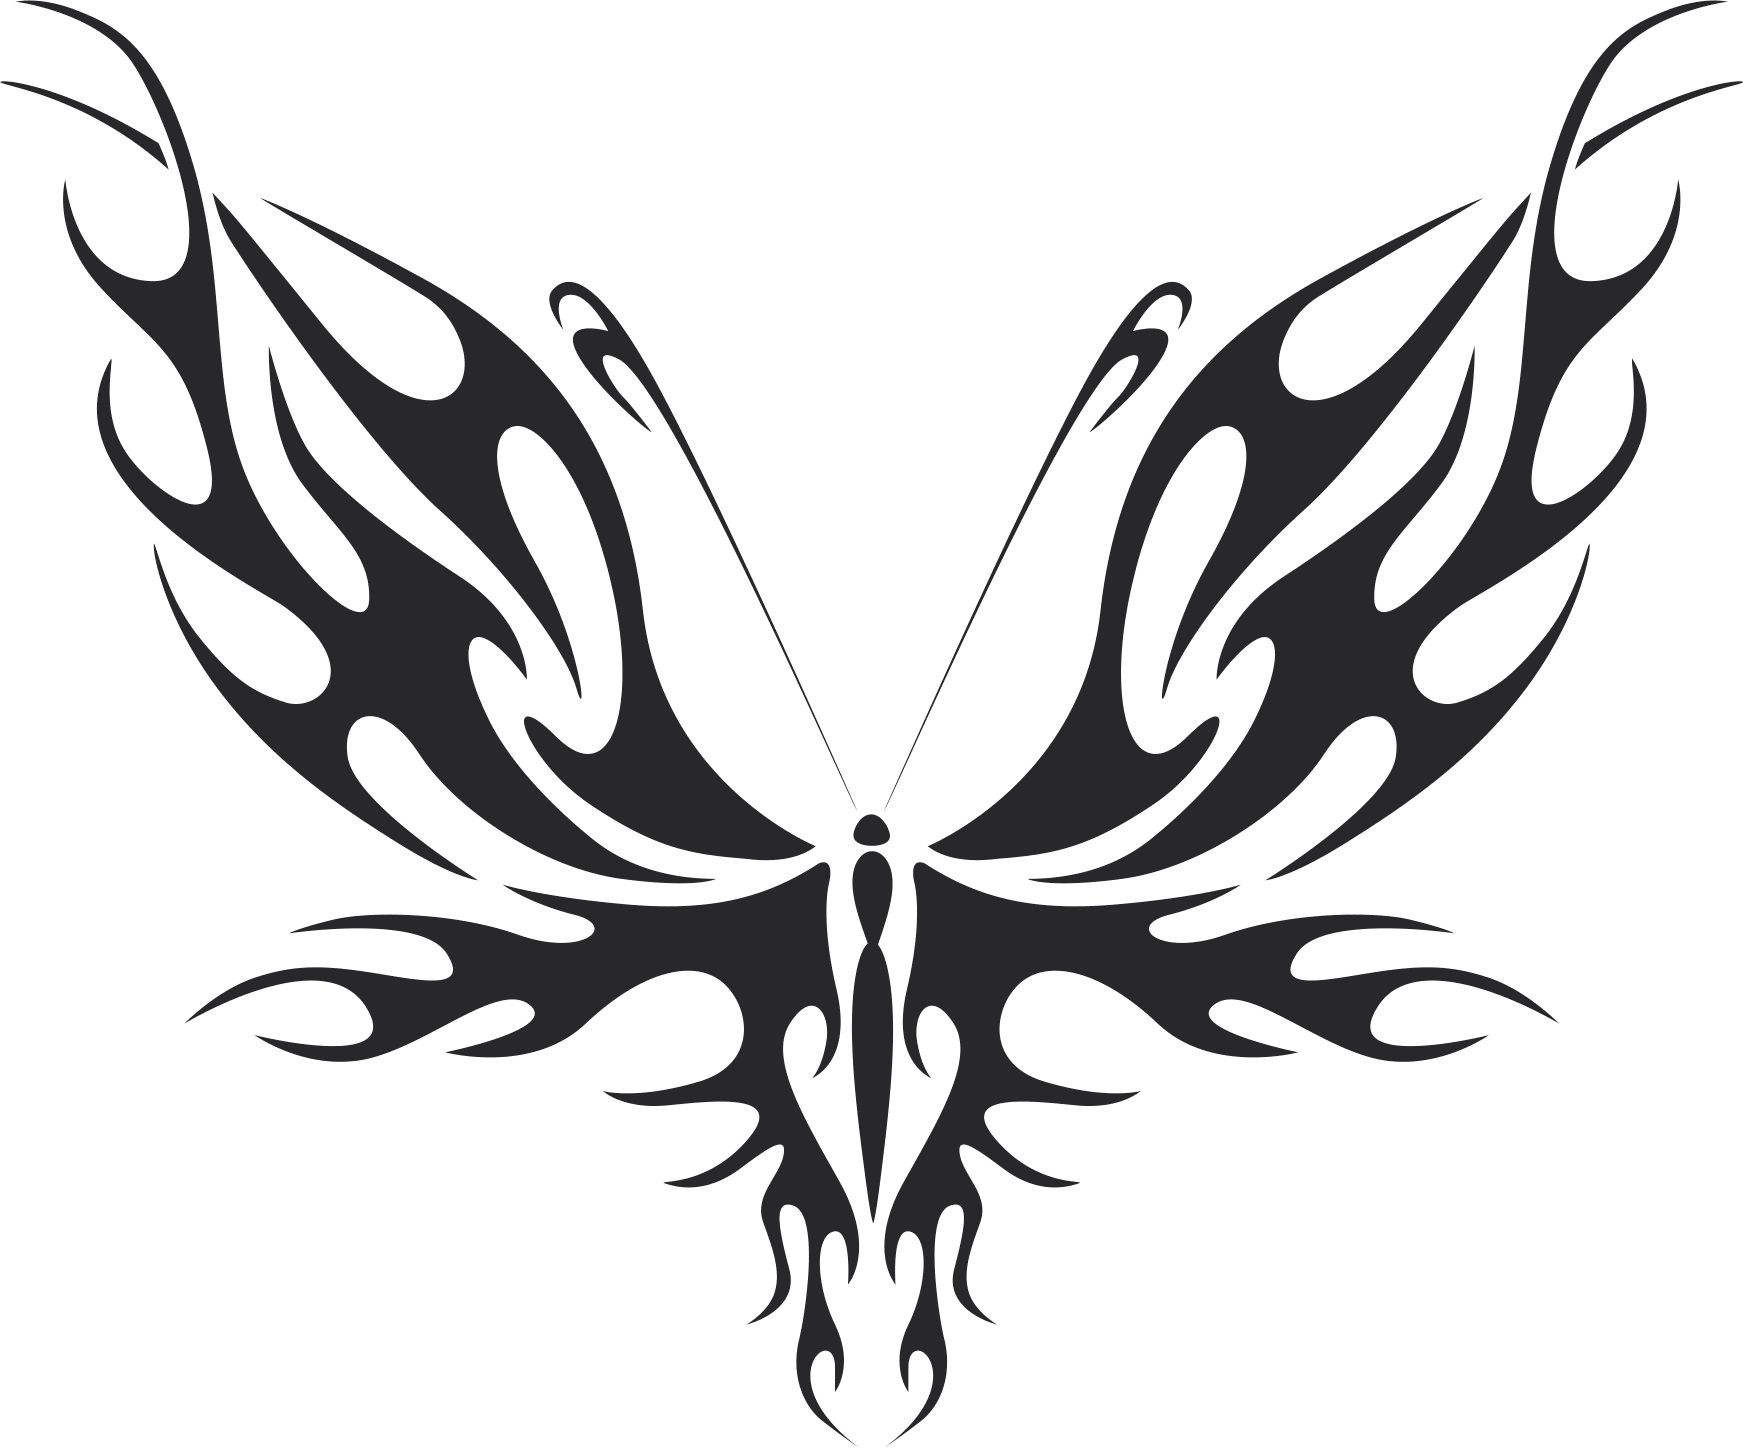 Tattoo Tribal Butterfly 555 Free DXF File